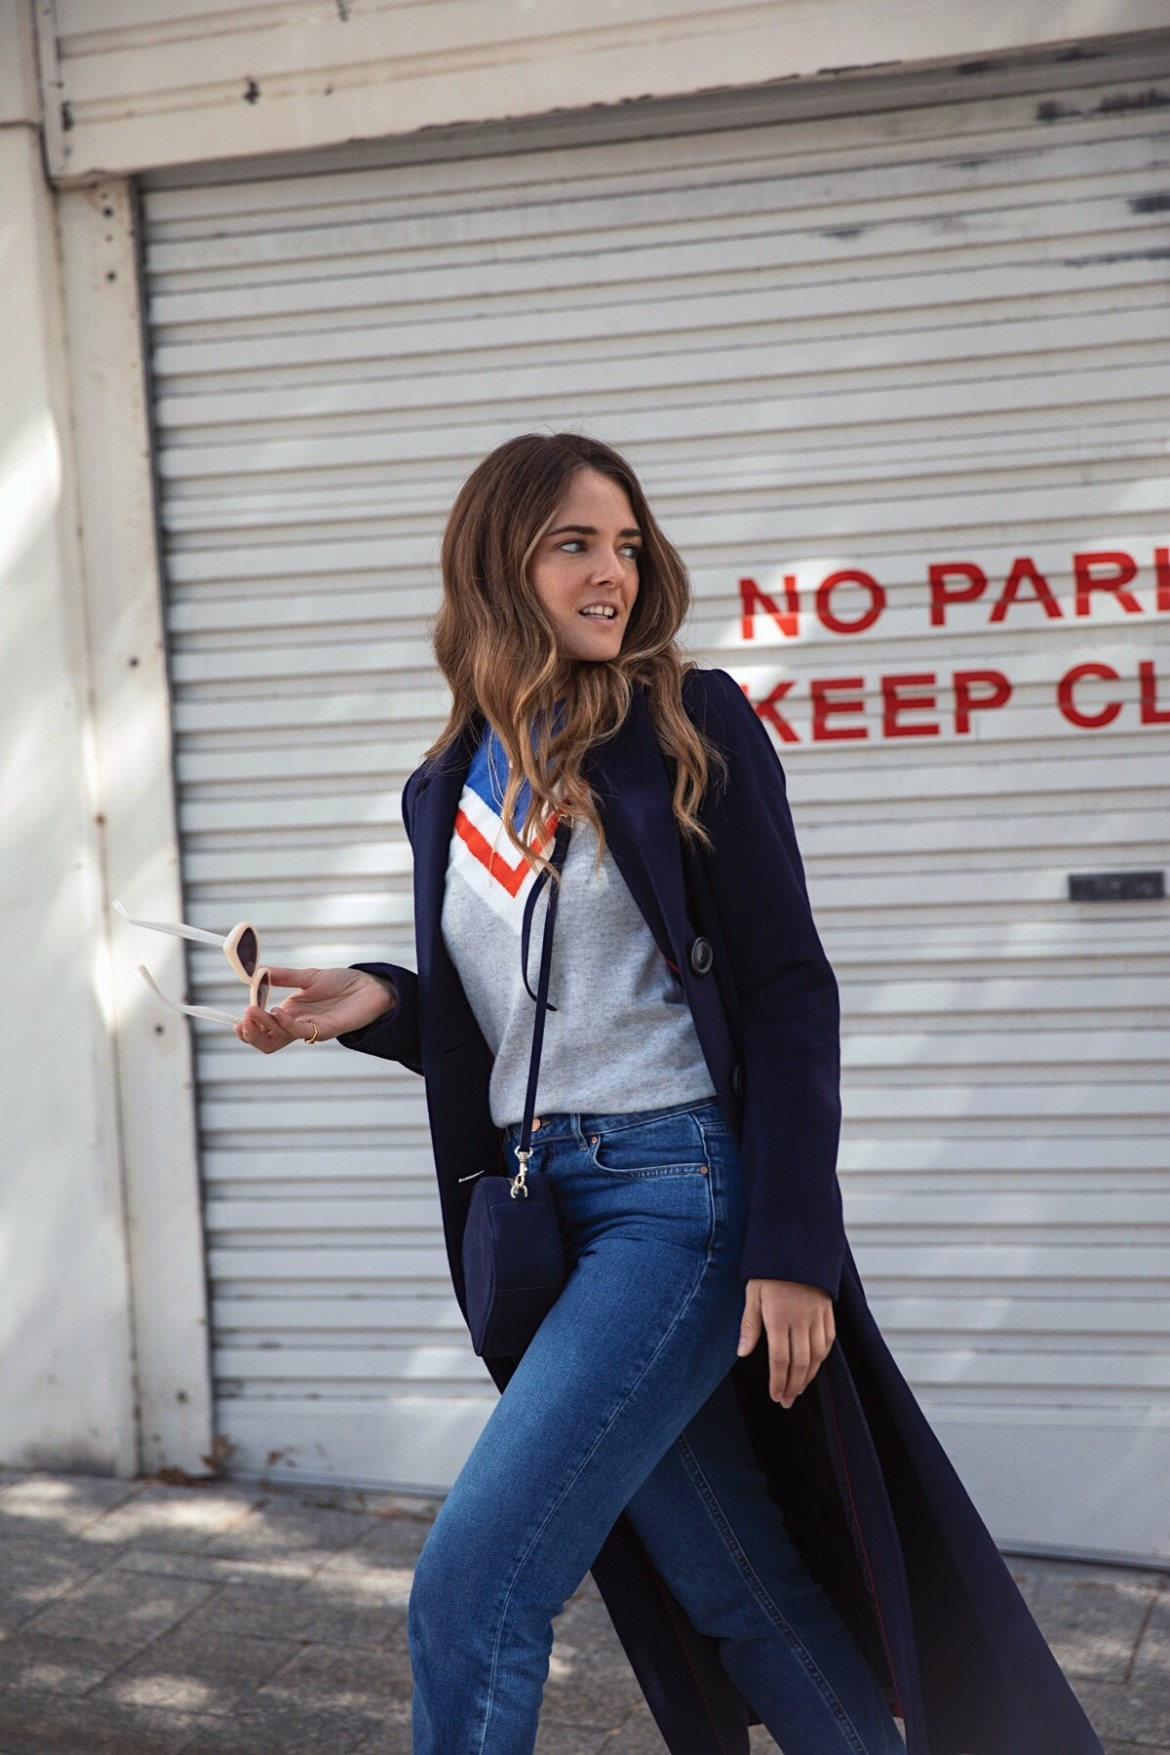 Boden street style outfit with navy coat, cashmere knit, suede heels, cat-eye sunglasses and jeans worn by Inspiring Wit fashion blogger Jenelle